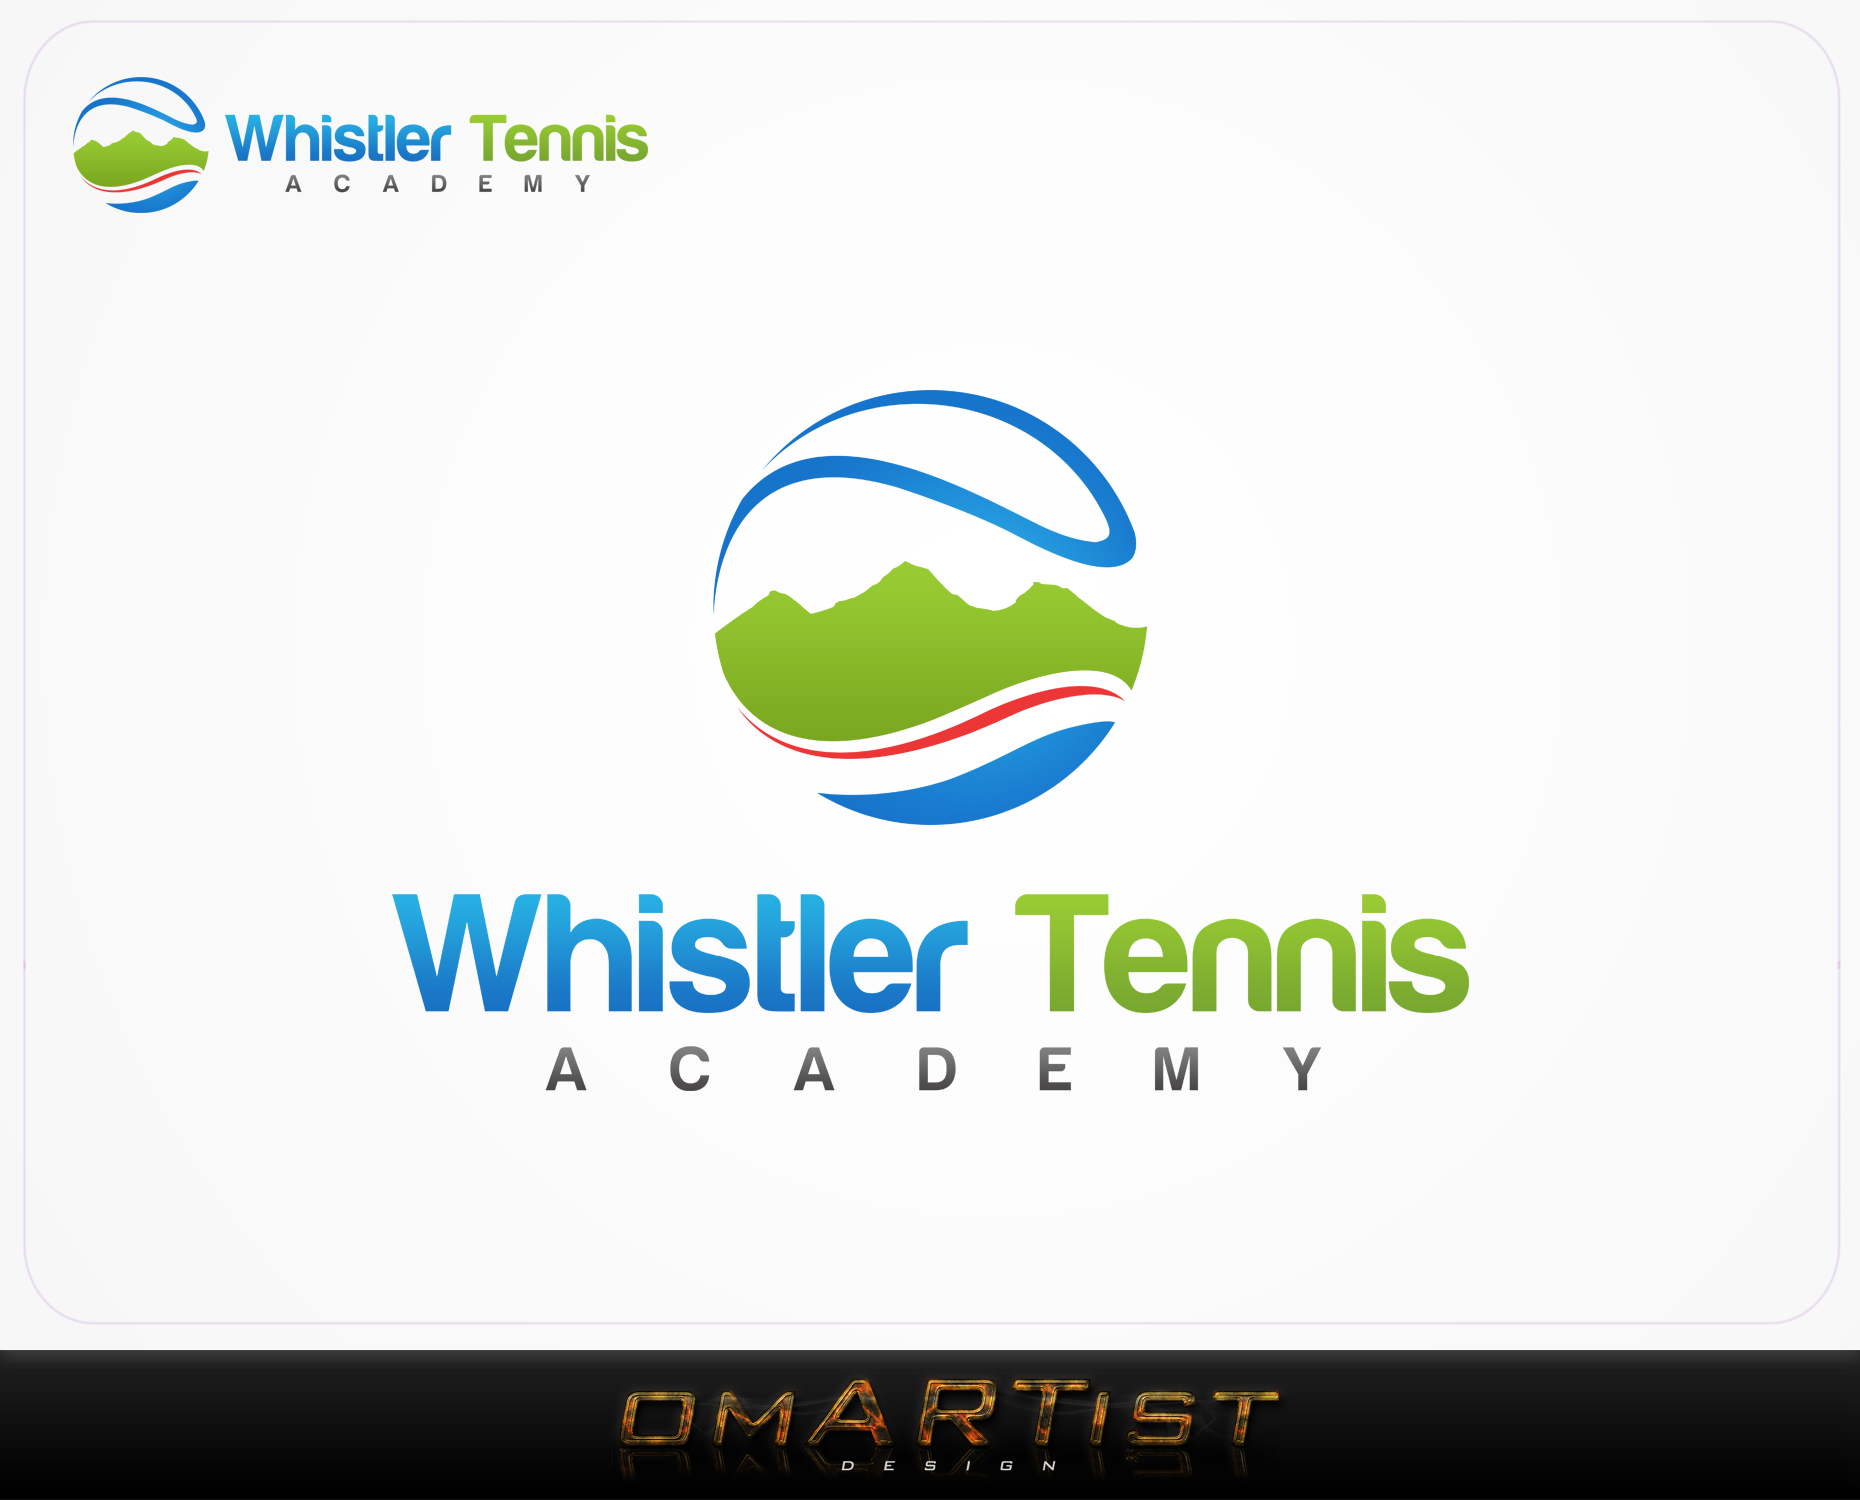 Logo Design by omARTist - Entry No. 175 in the Logo Design Contest Imaginative Logo Design for Whistler Tennis Academy.